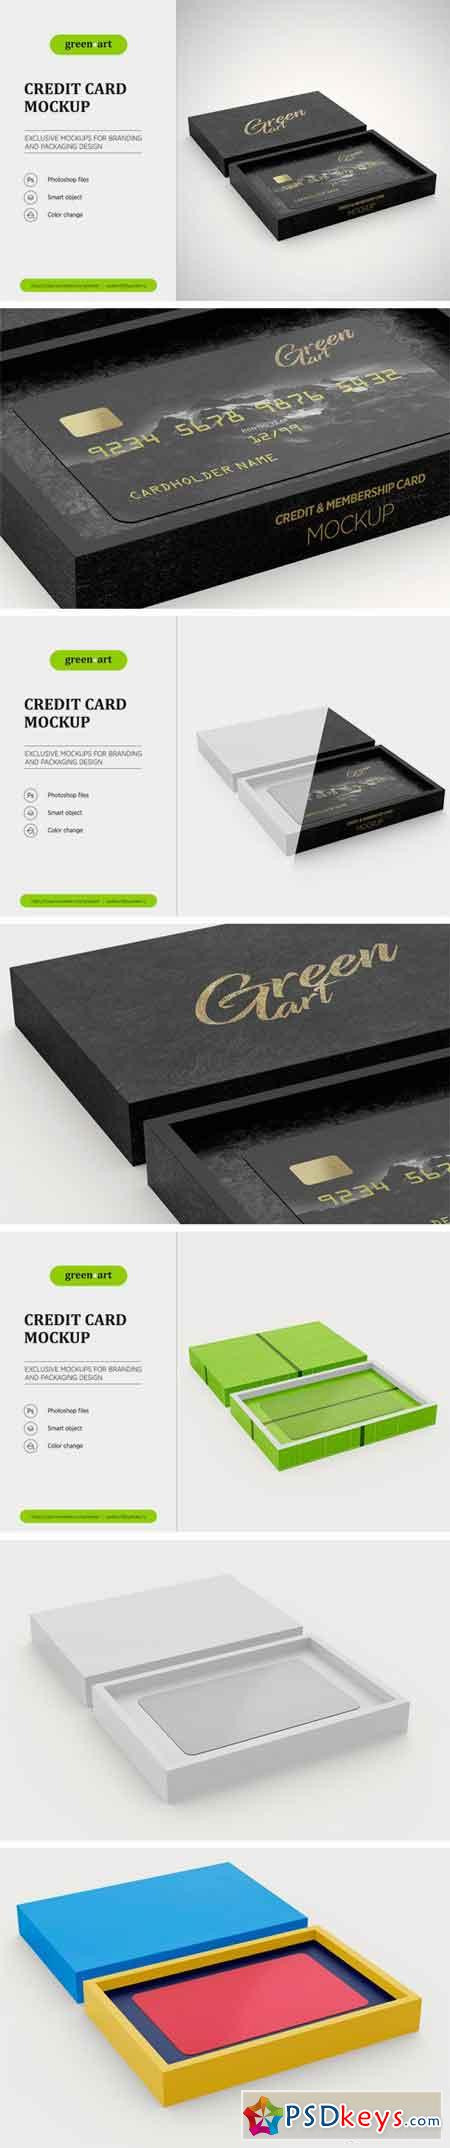 Credit Card Mockup 2199516 » Free Download Photoshop Vector